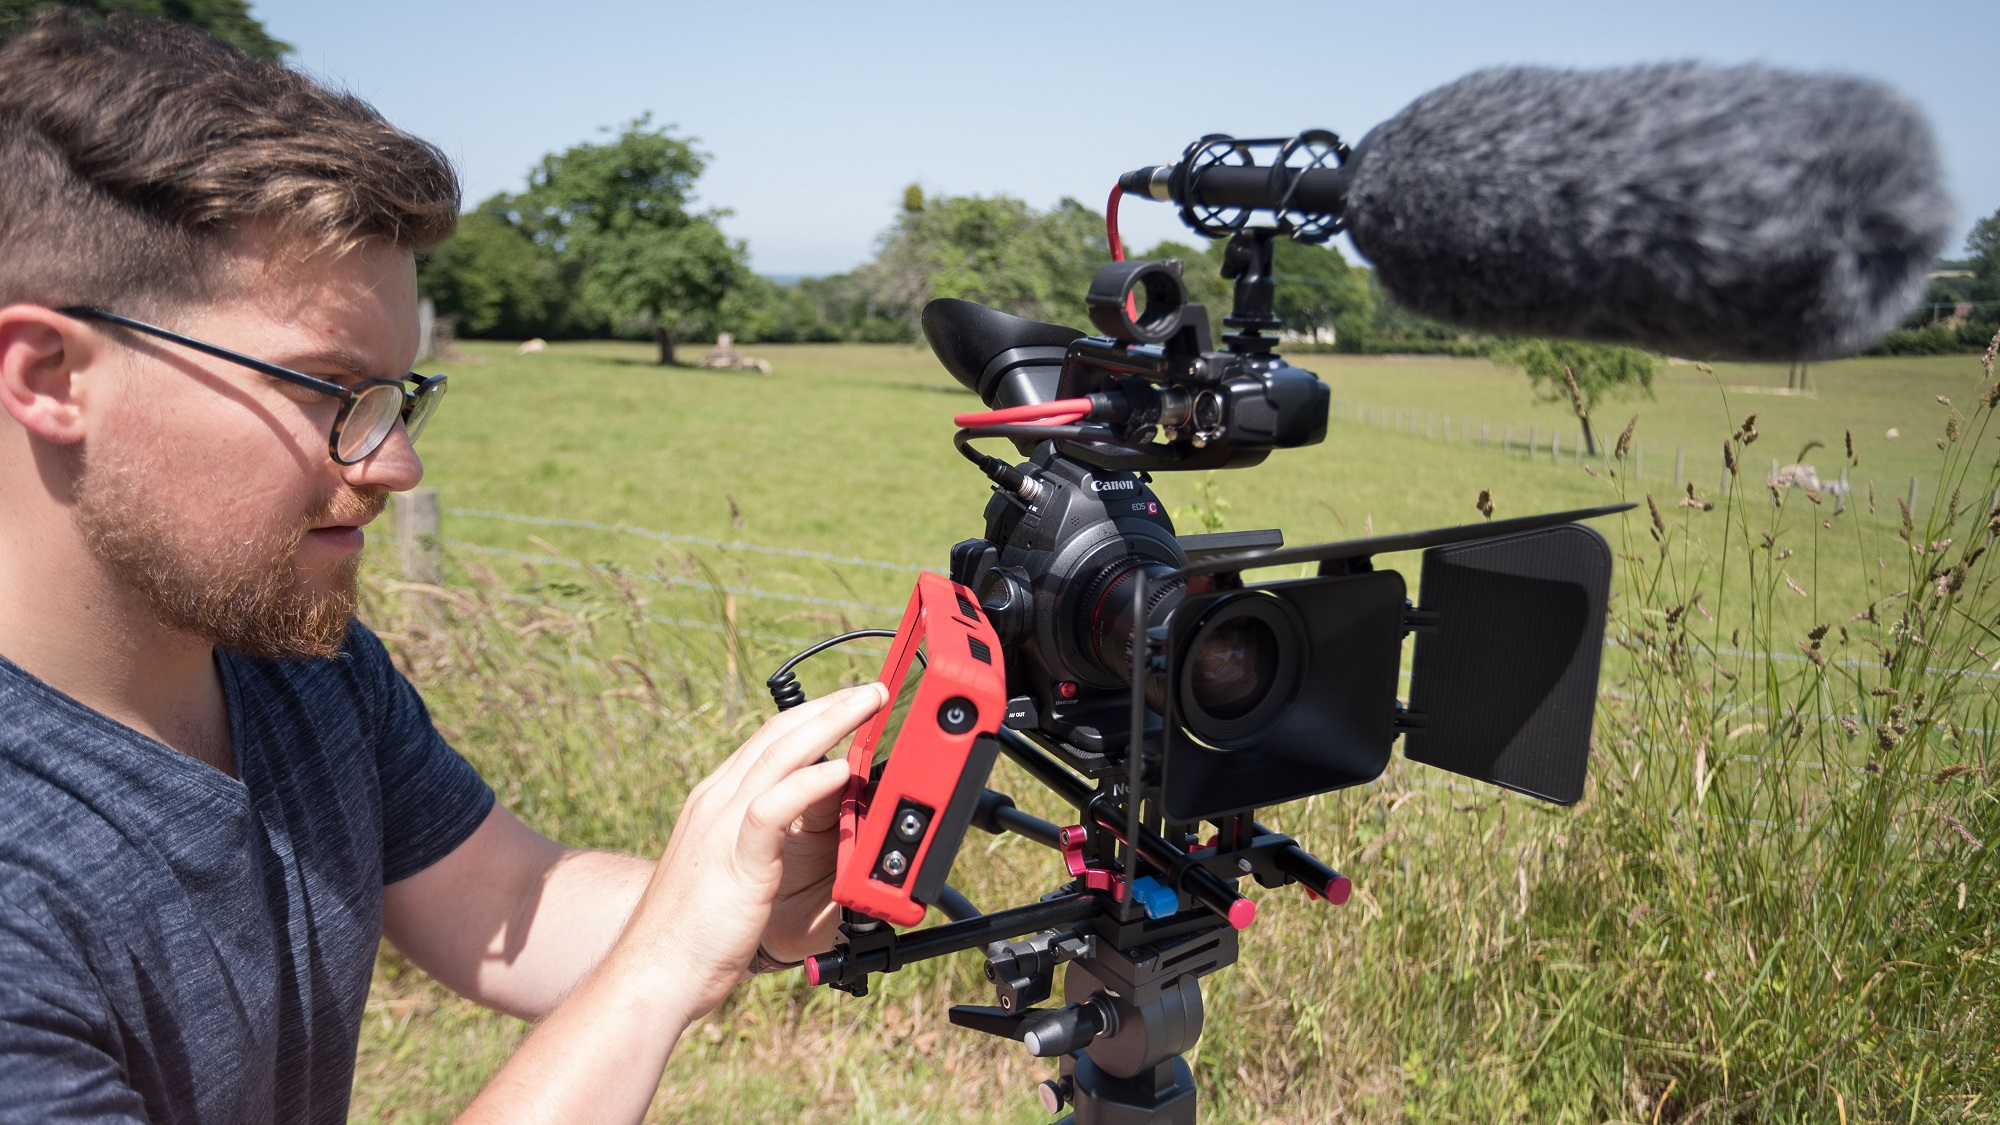 Share your vision through my craft - Ethical film making for socially conscious organisations